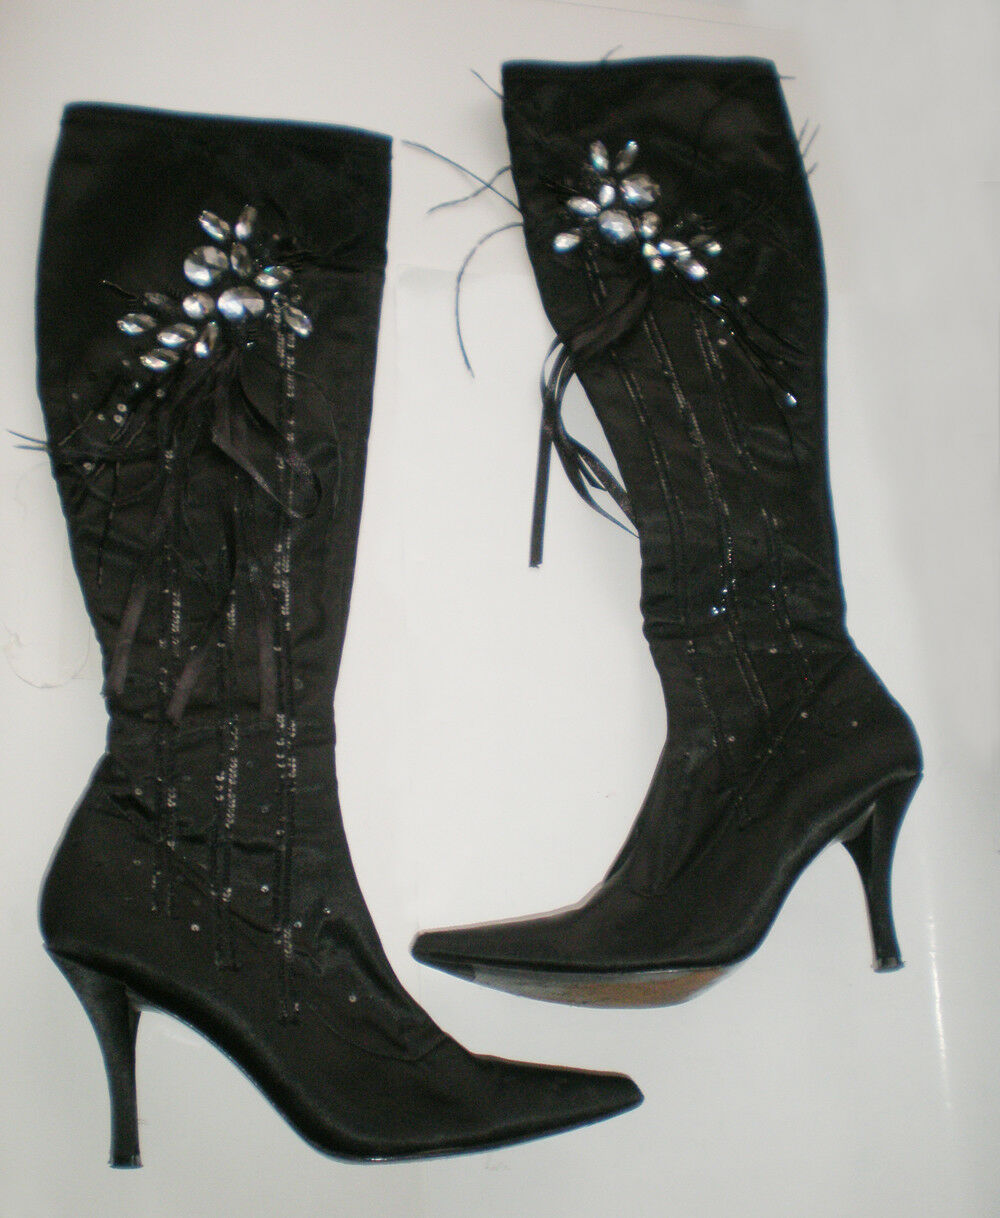 Bourne Satin Boots shoes with Swarovski Crystals, size EU 40